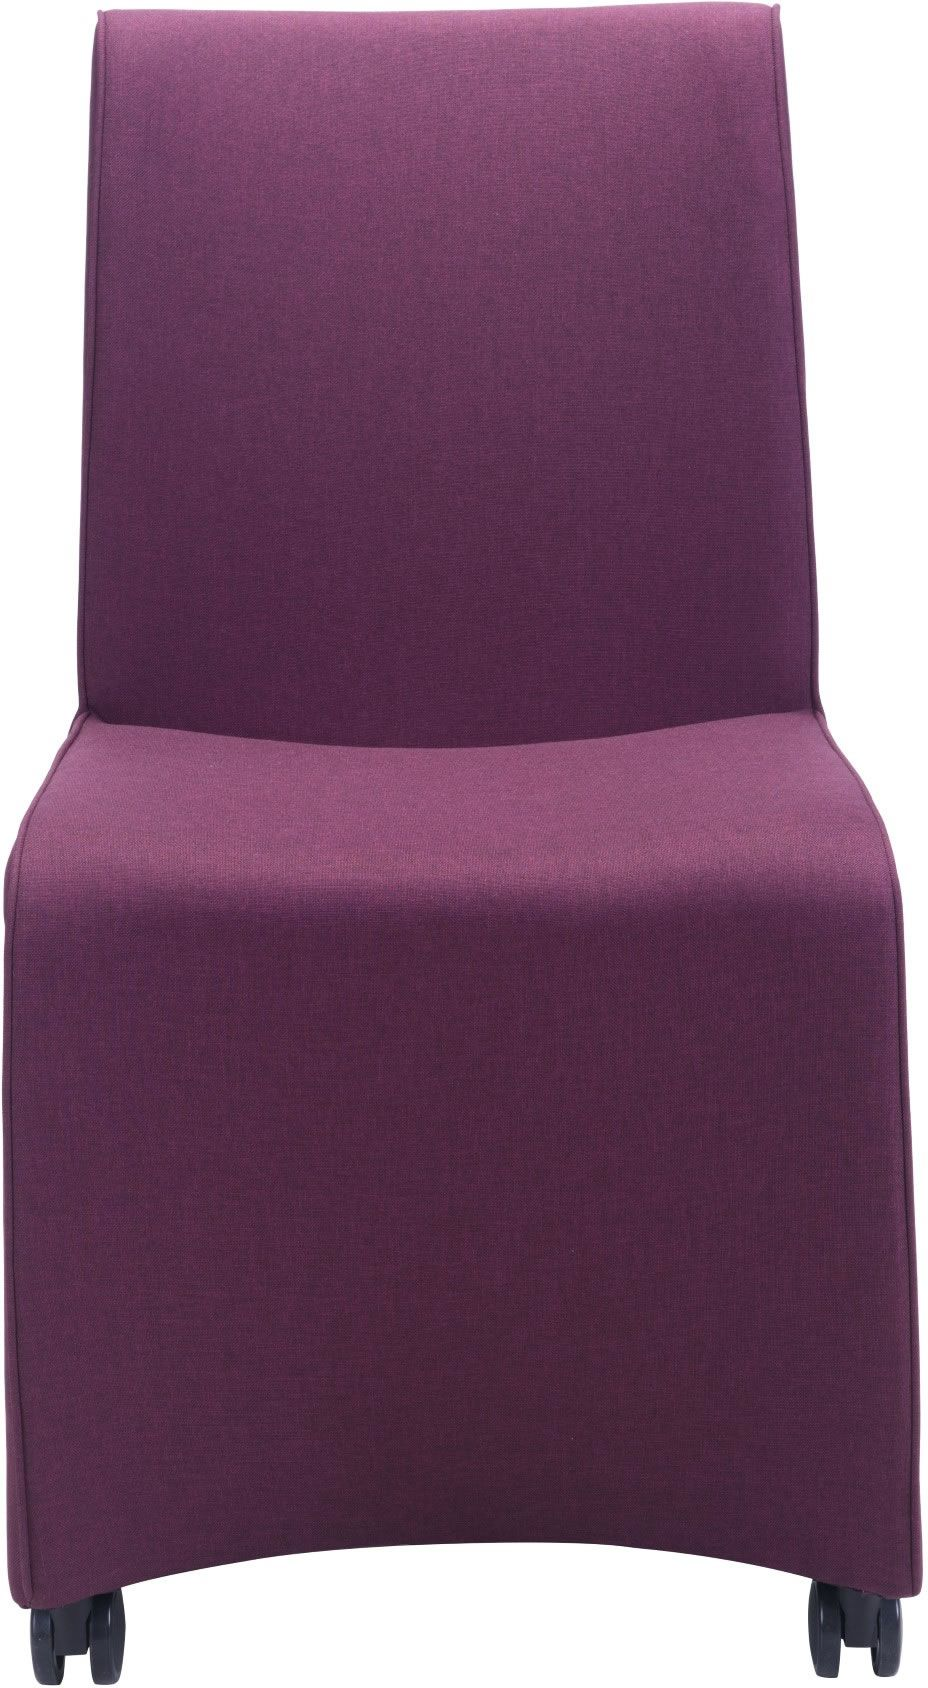 purple dining chairs canada black leather chair ikea zuo modern whittle set of 2